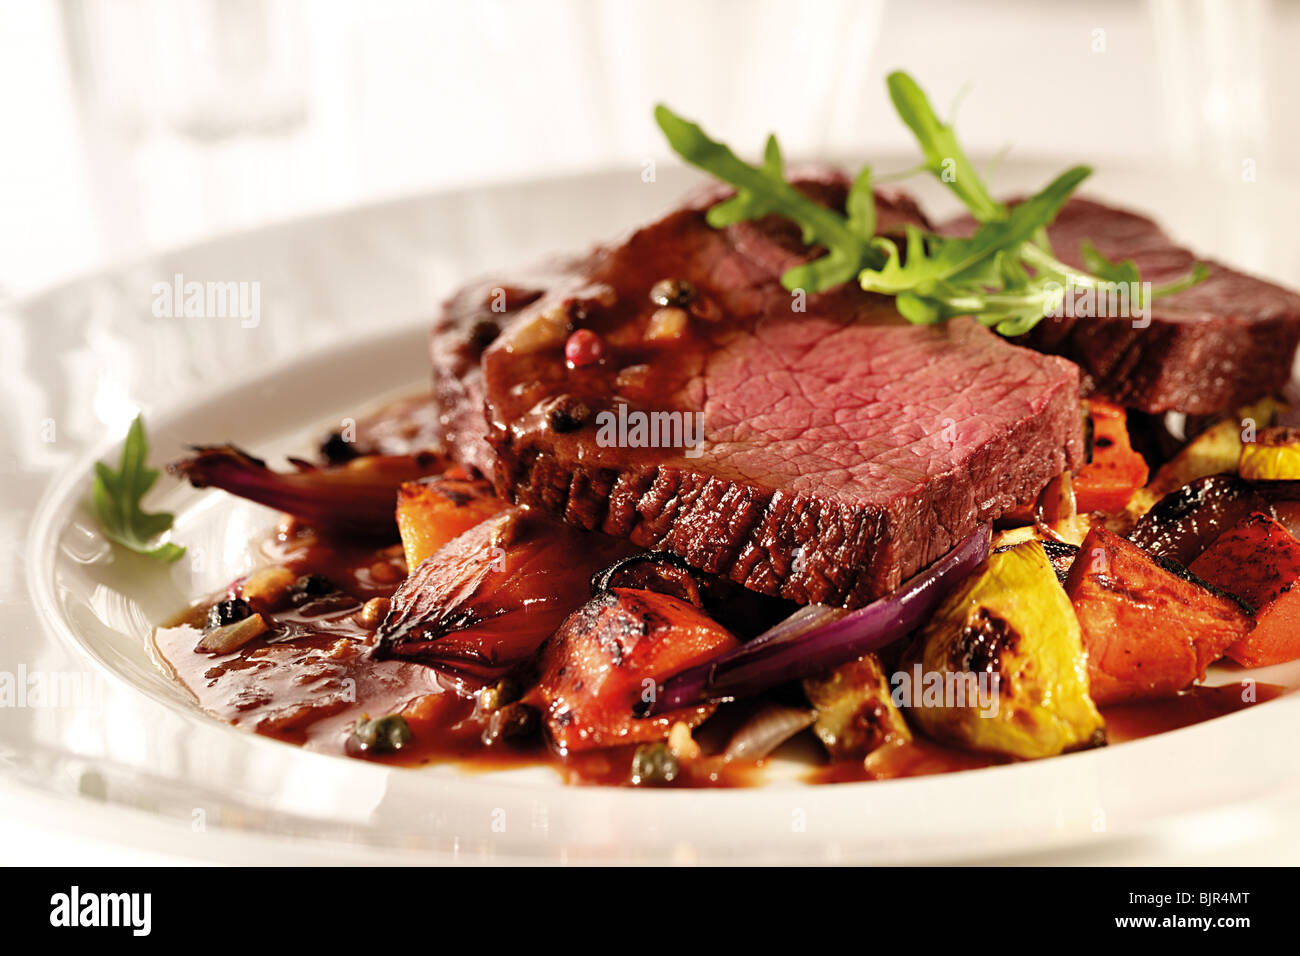 steak and wine pepper sauce food photos and images - Stock Image